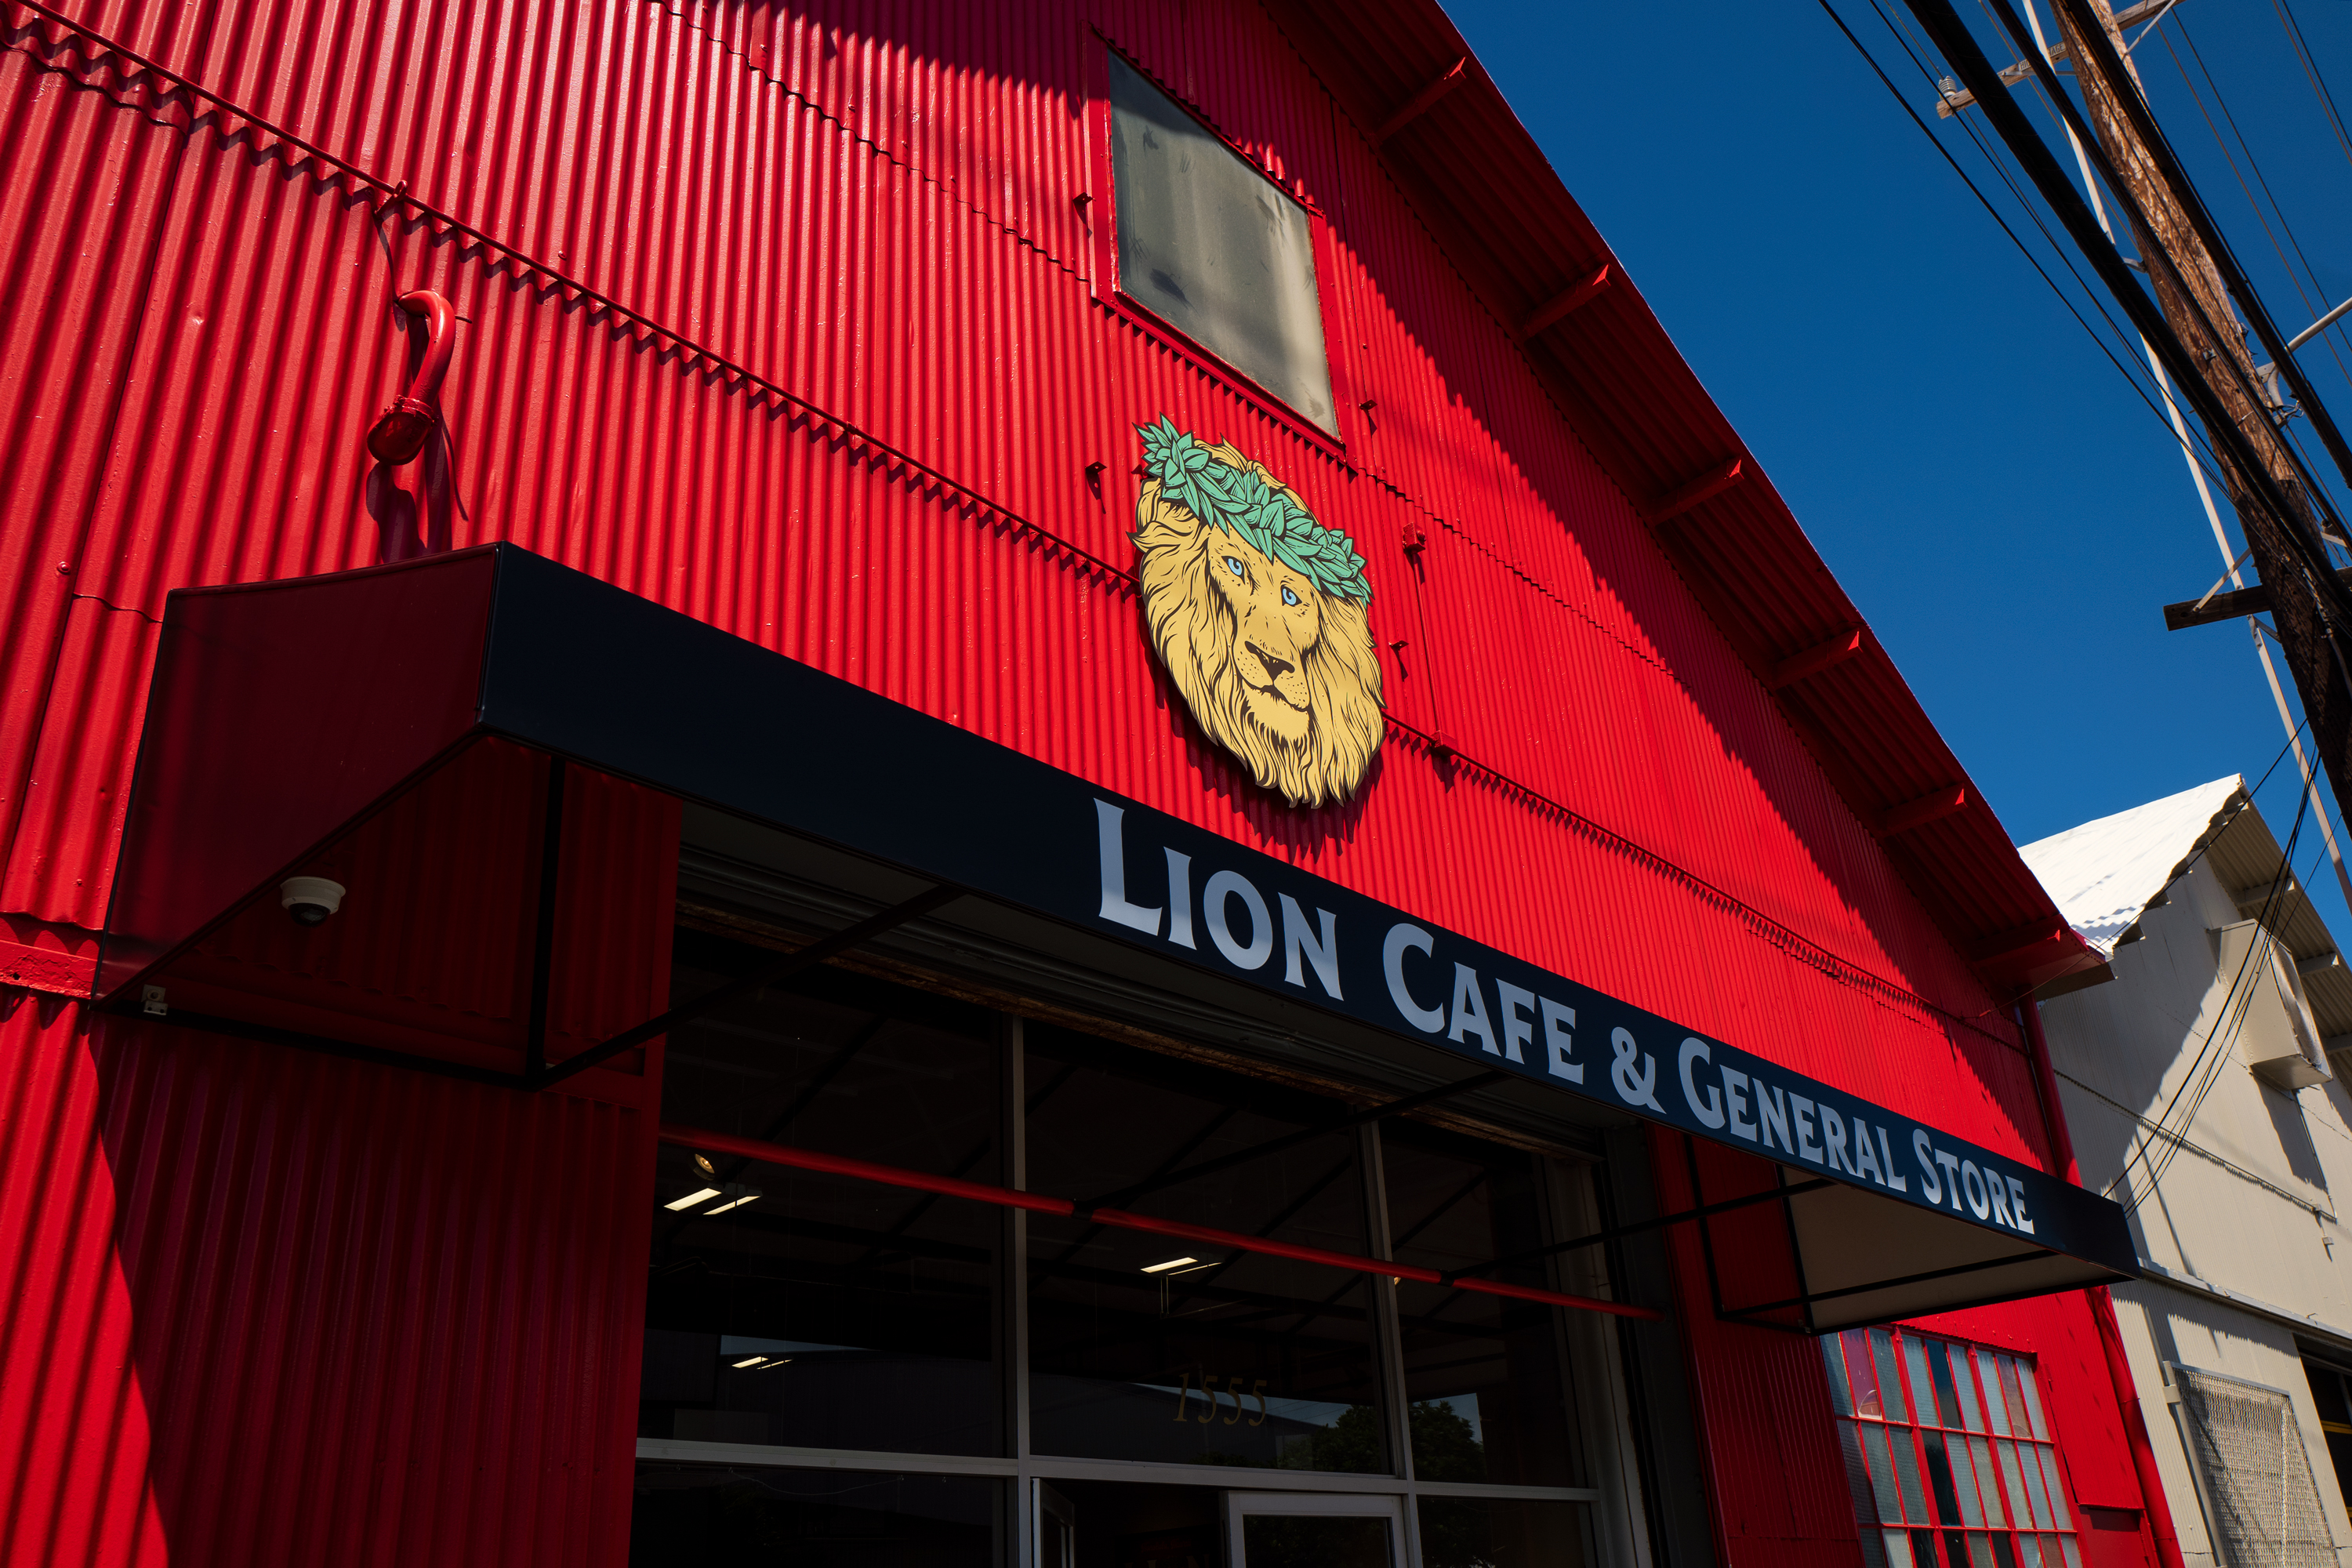 Lion Cafe & General Store